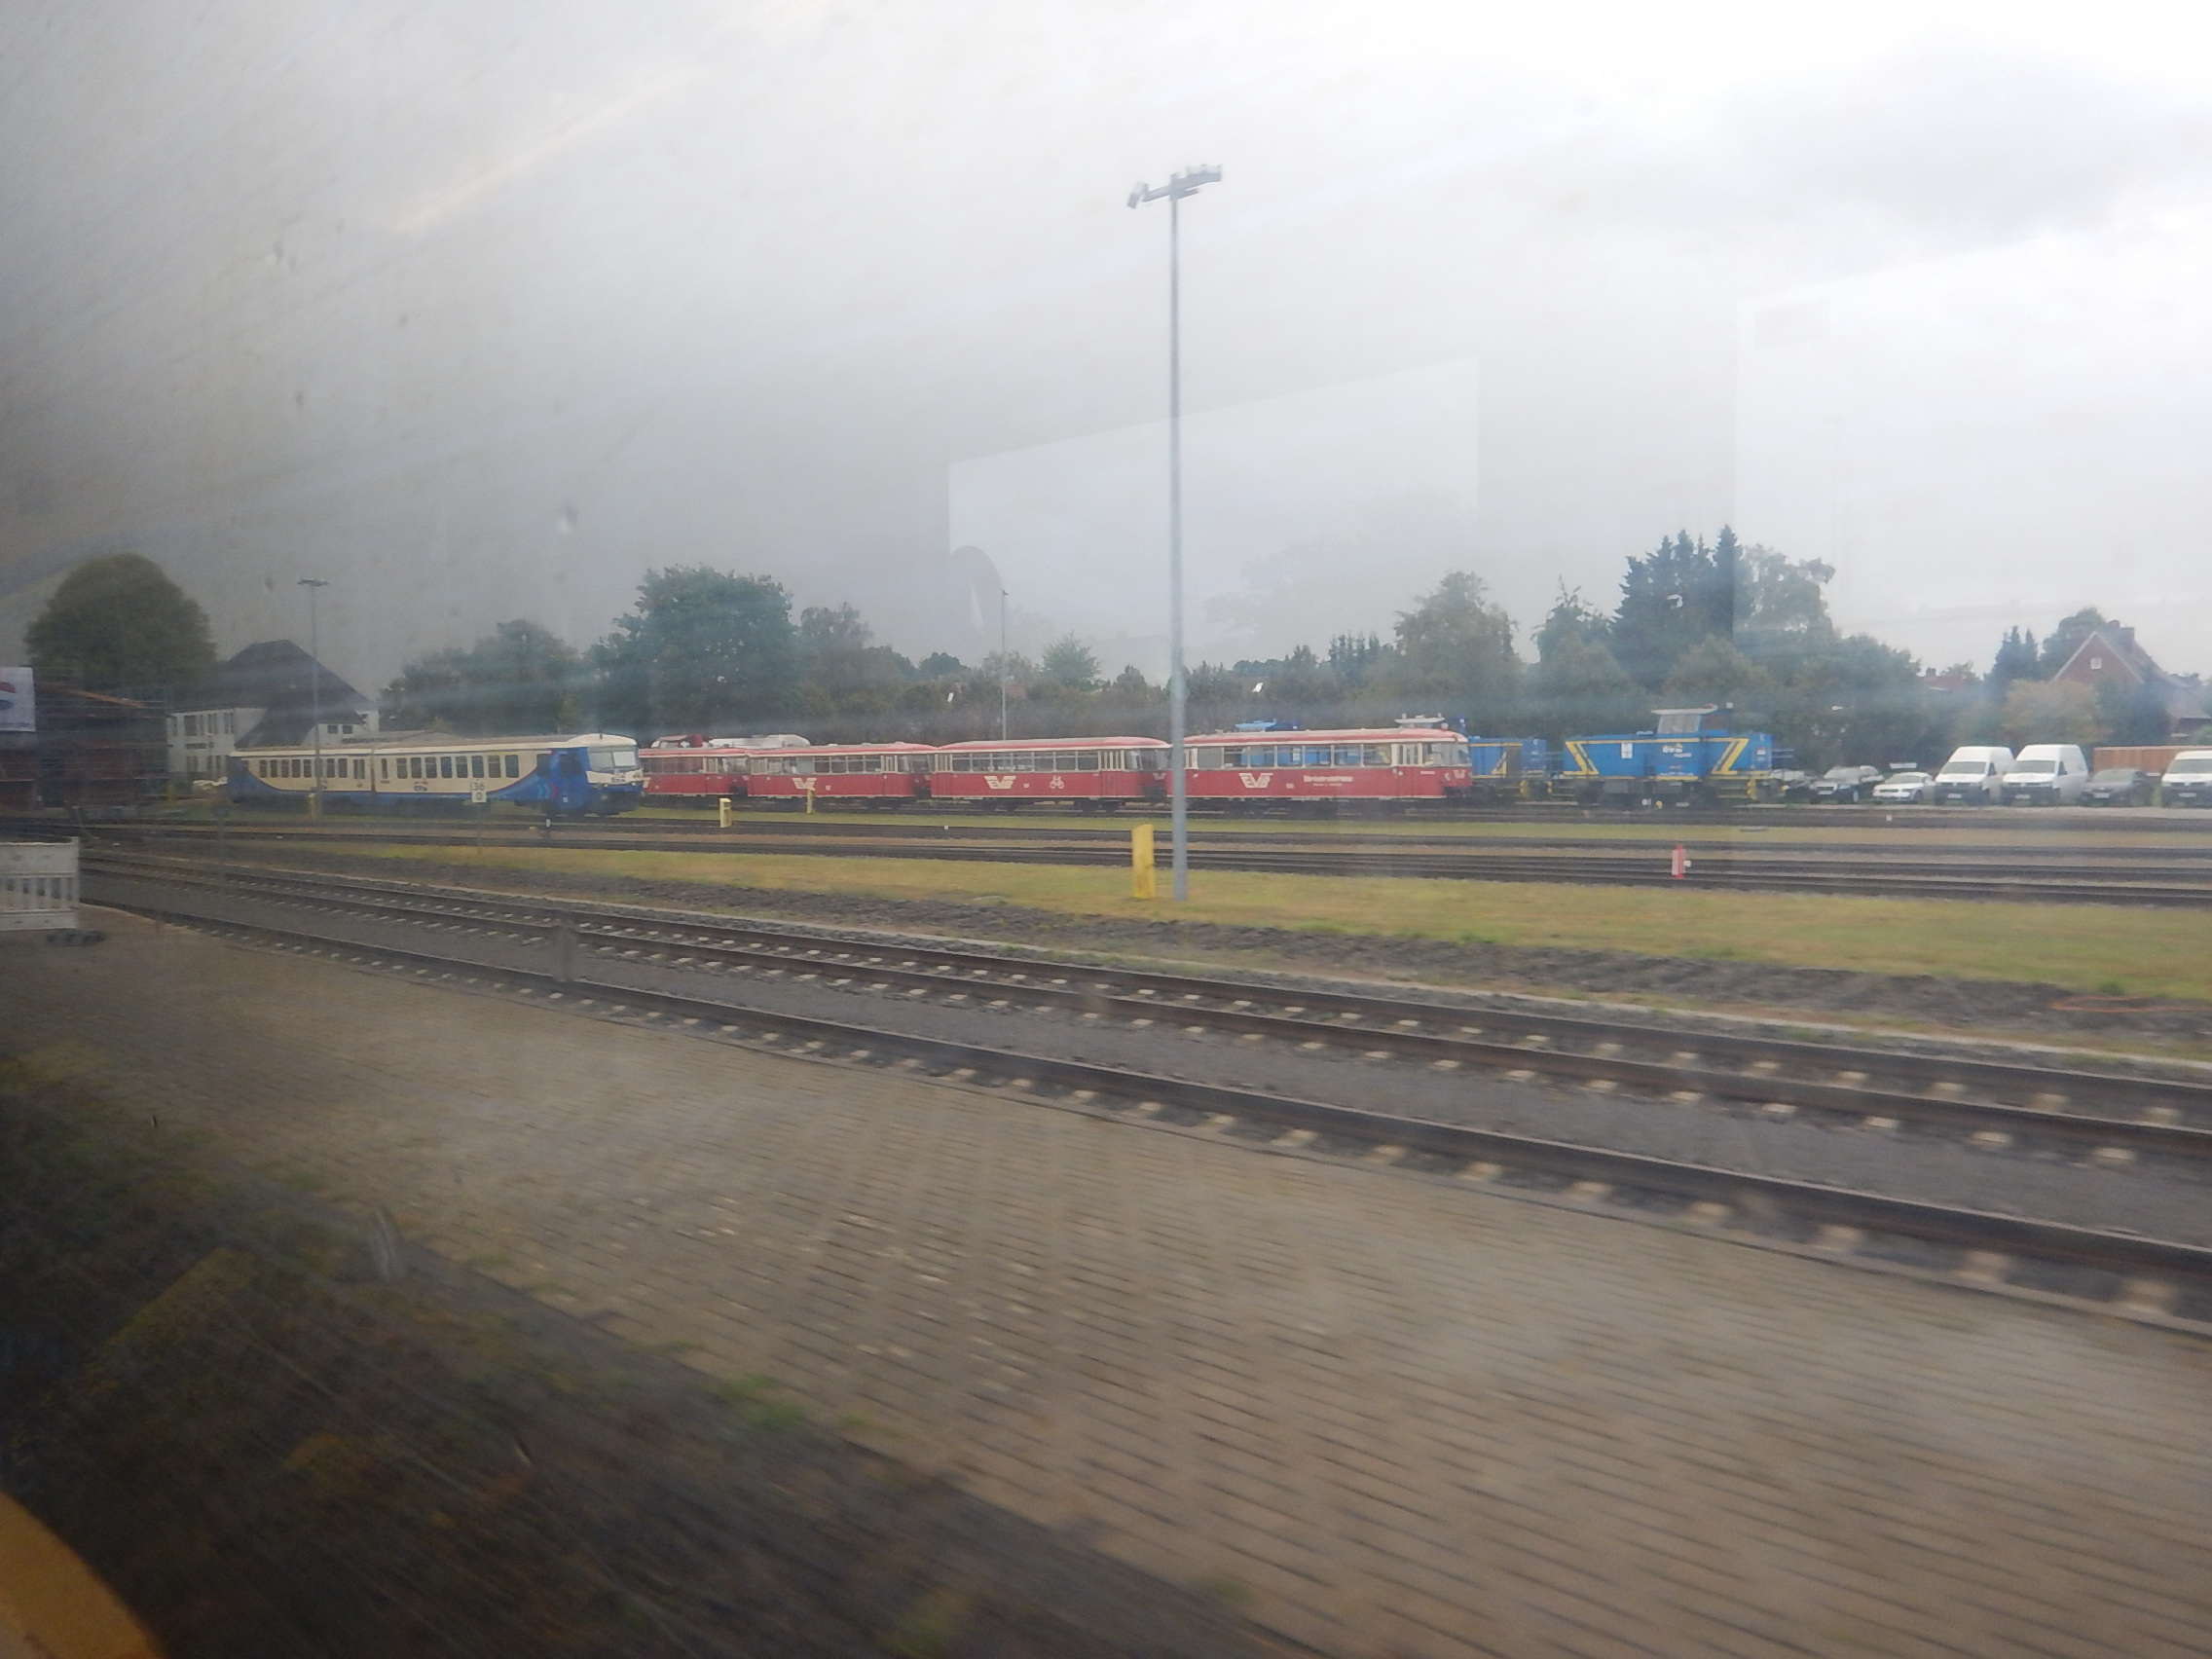 Will Alstom Use The Buxtehude To Cuxhaven Route As A Test